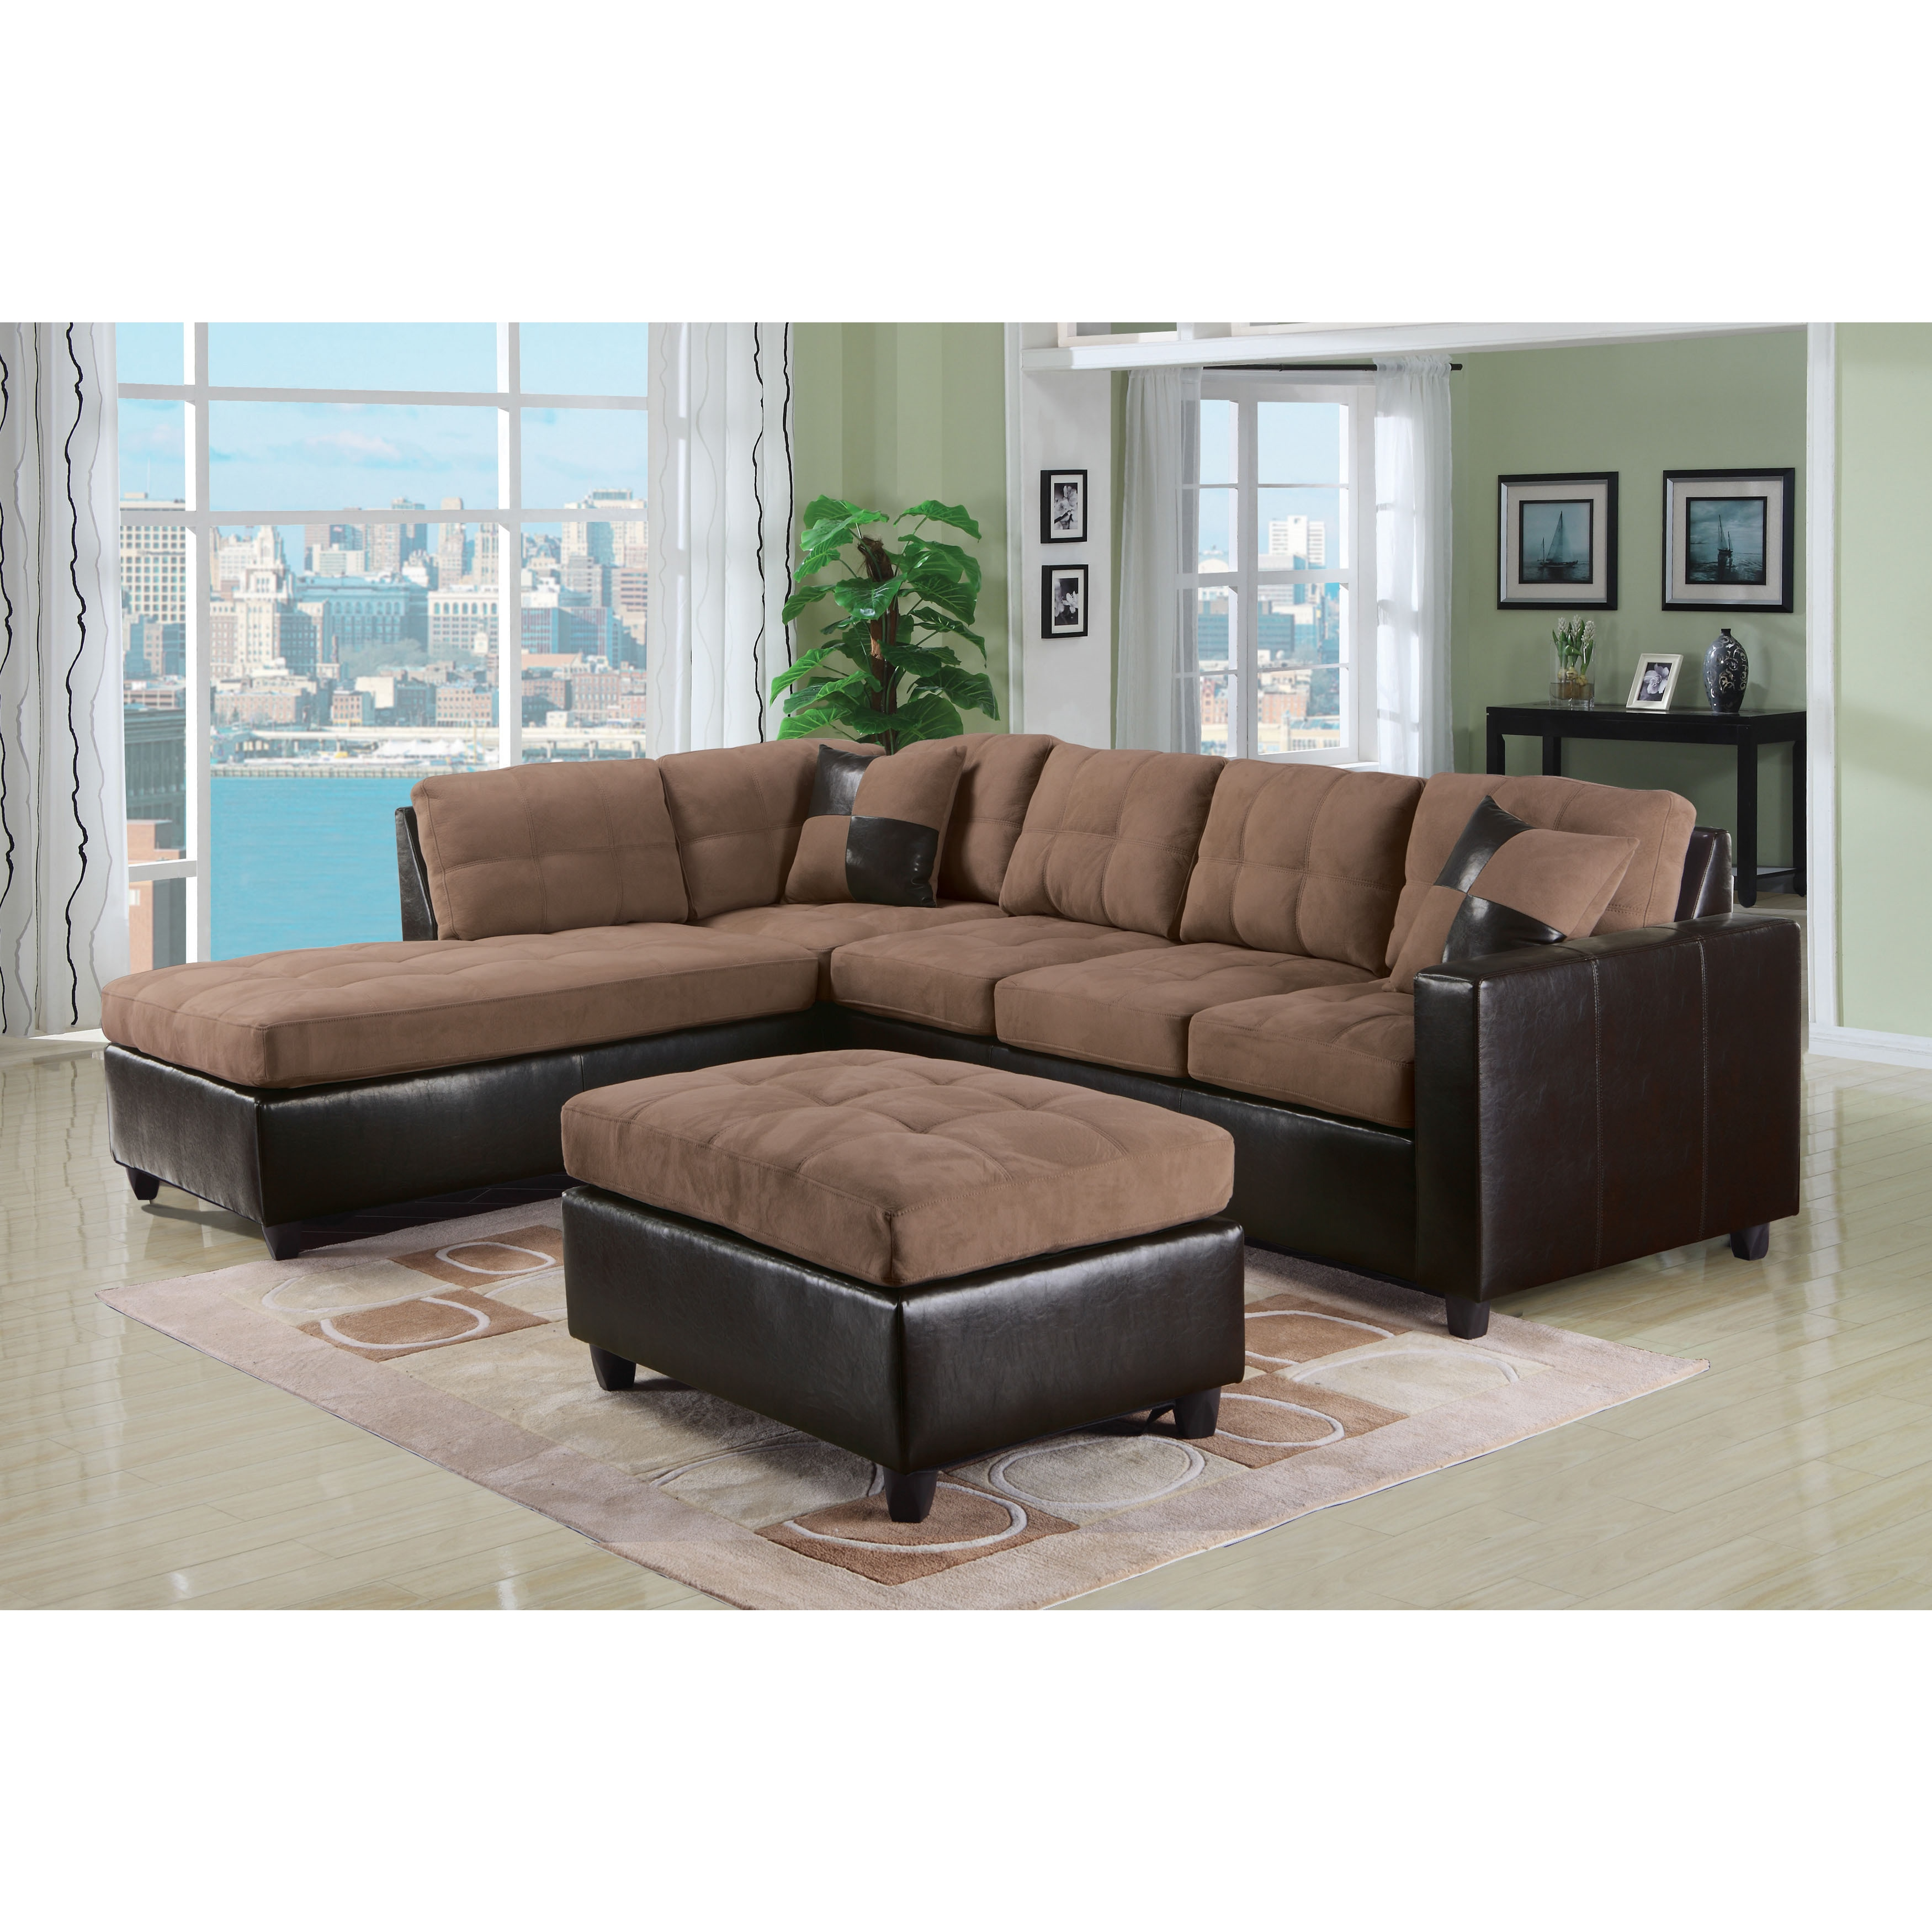 ACME Milano Reversible Sectional Sofa in Chocolate Easy R...